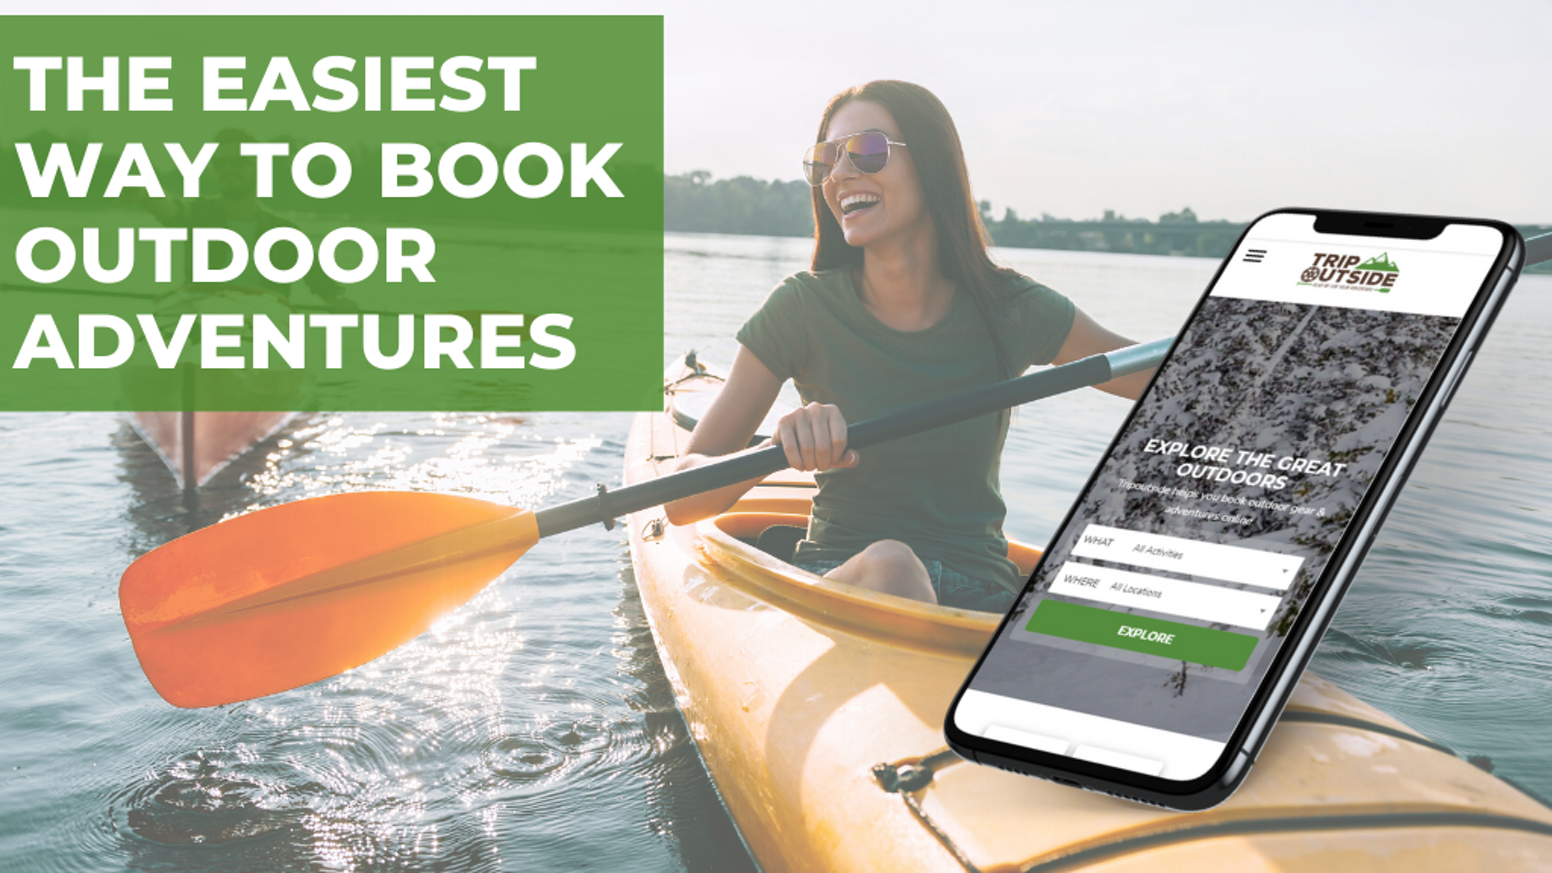 Research top outdoor destinations, find the best local outfitters and experiences, and book it all online.